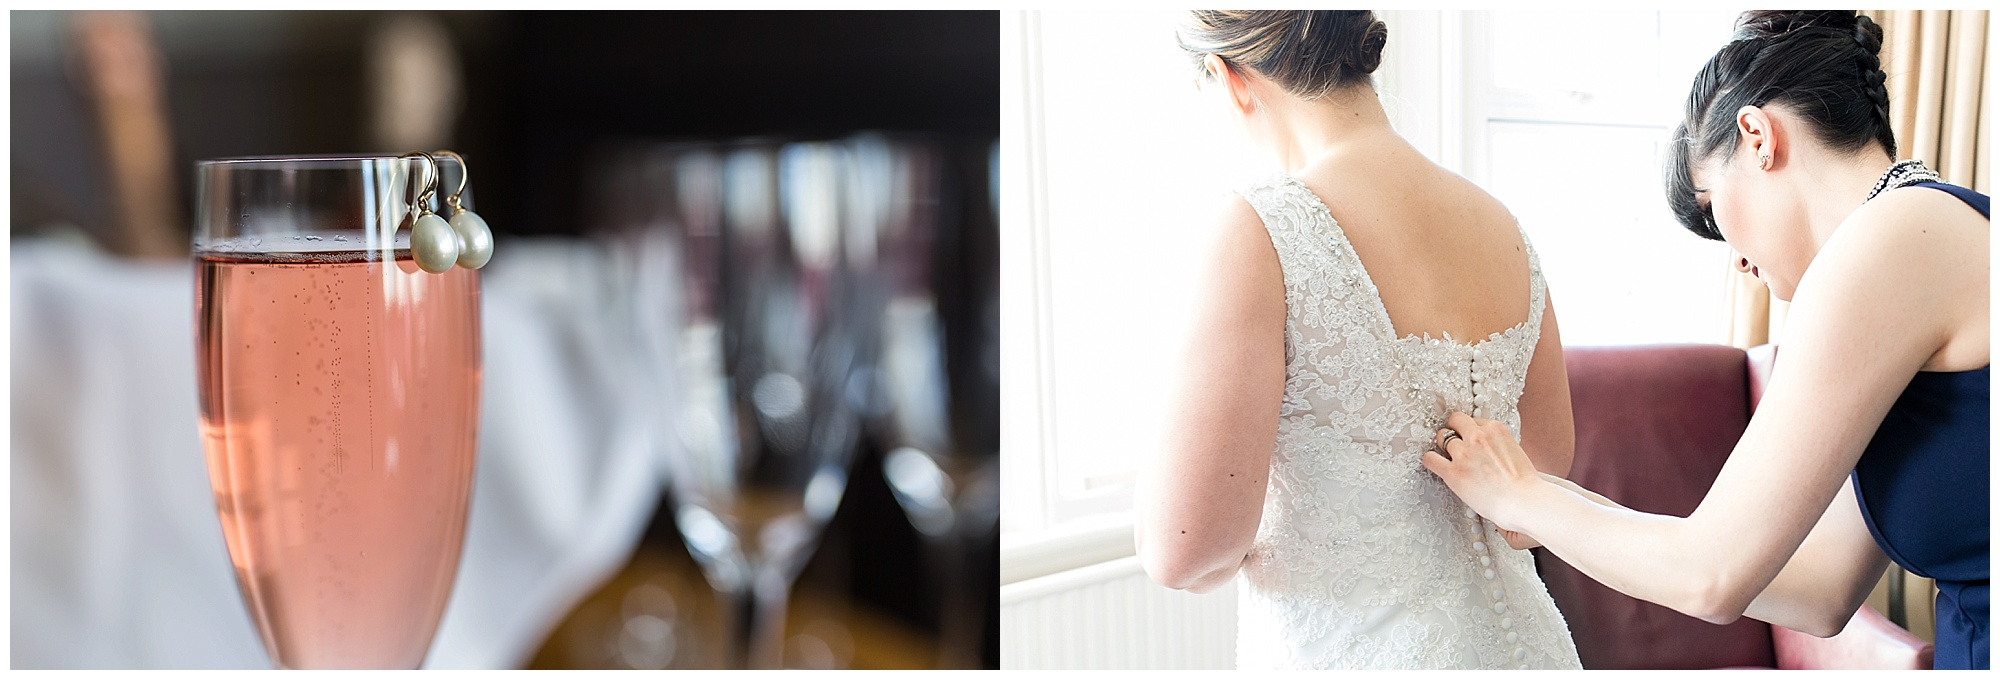 Bride preparing for her wedding, earrings on champagne glass and dress being fastened